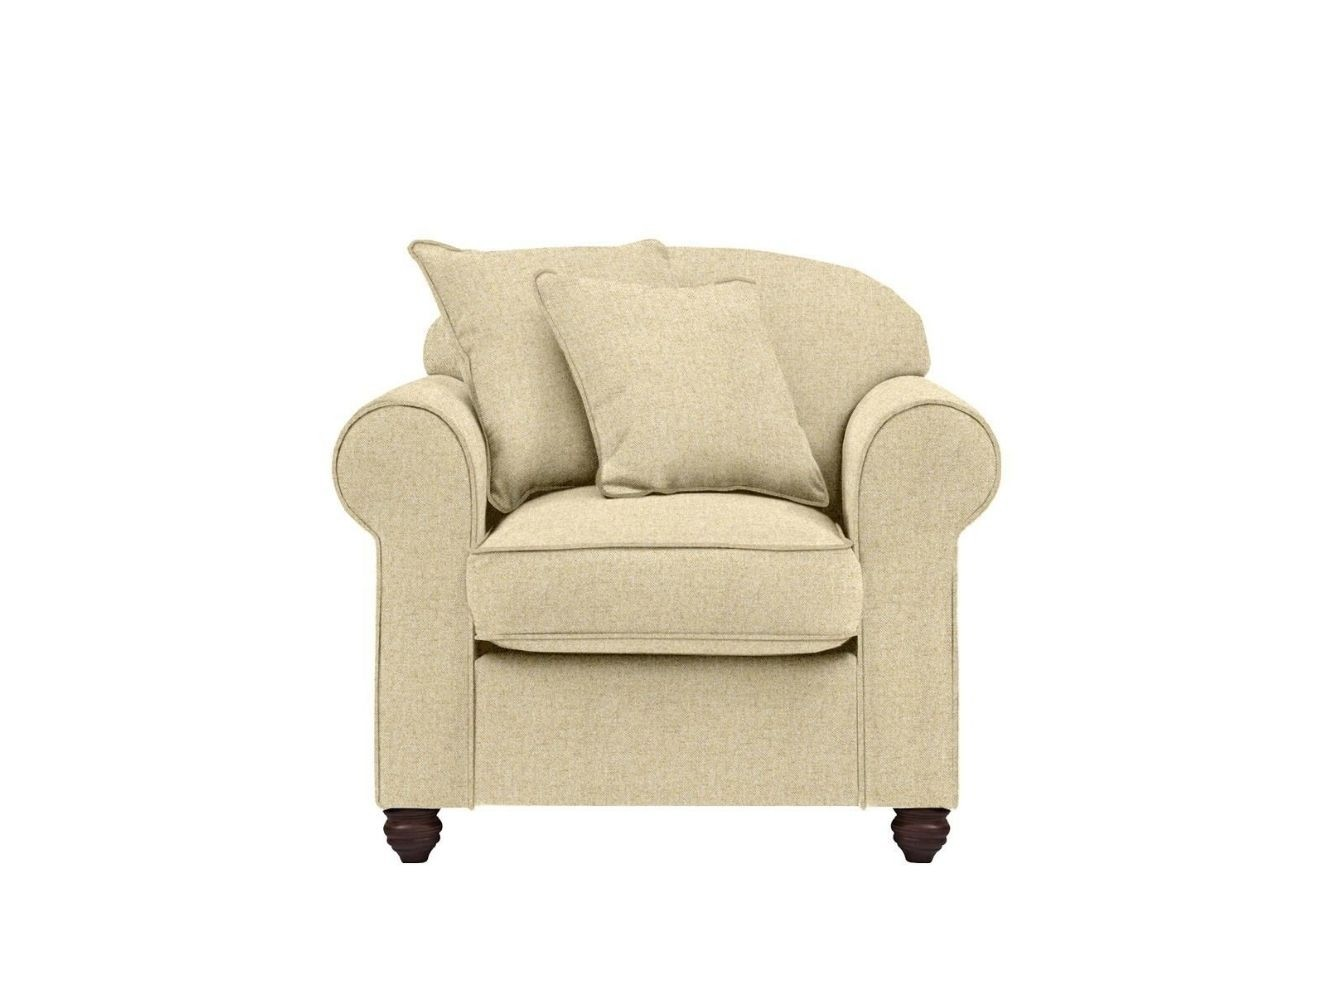 This is how I look in Herringbone Wool Honeydew with siliconized hollow fibre seat cushions